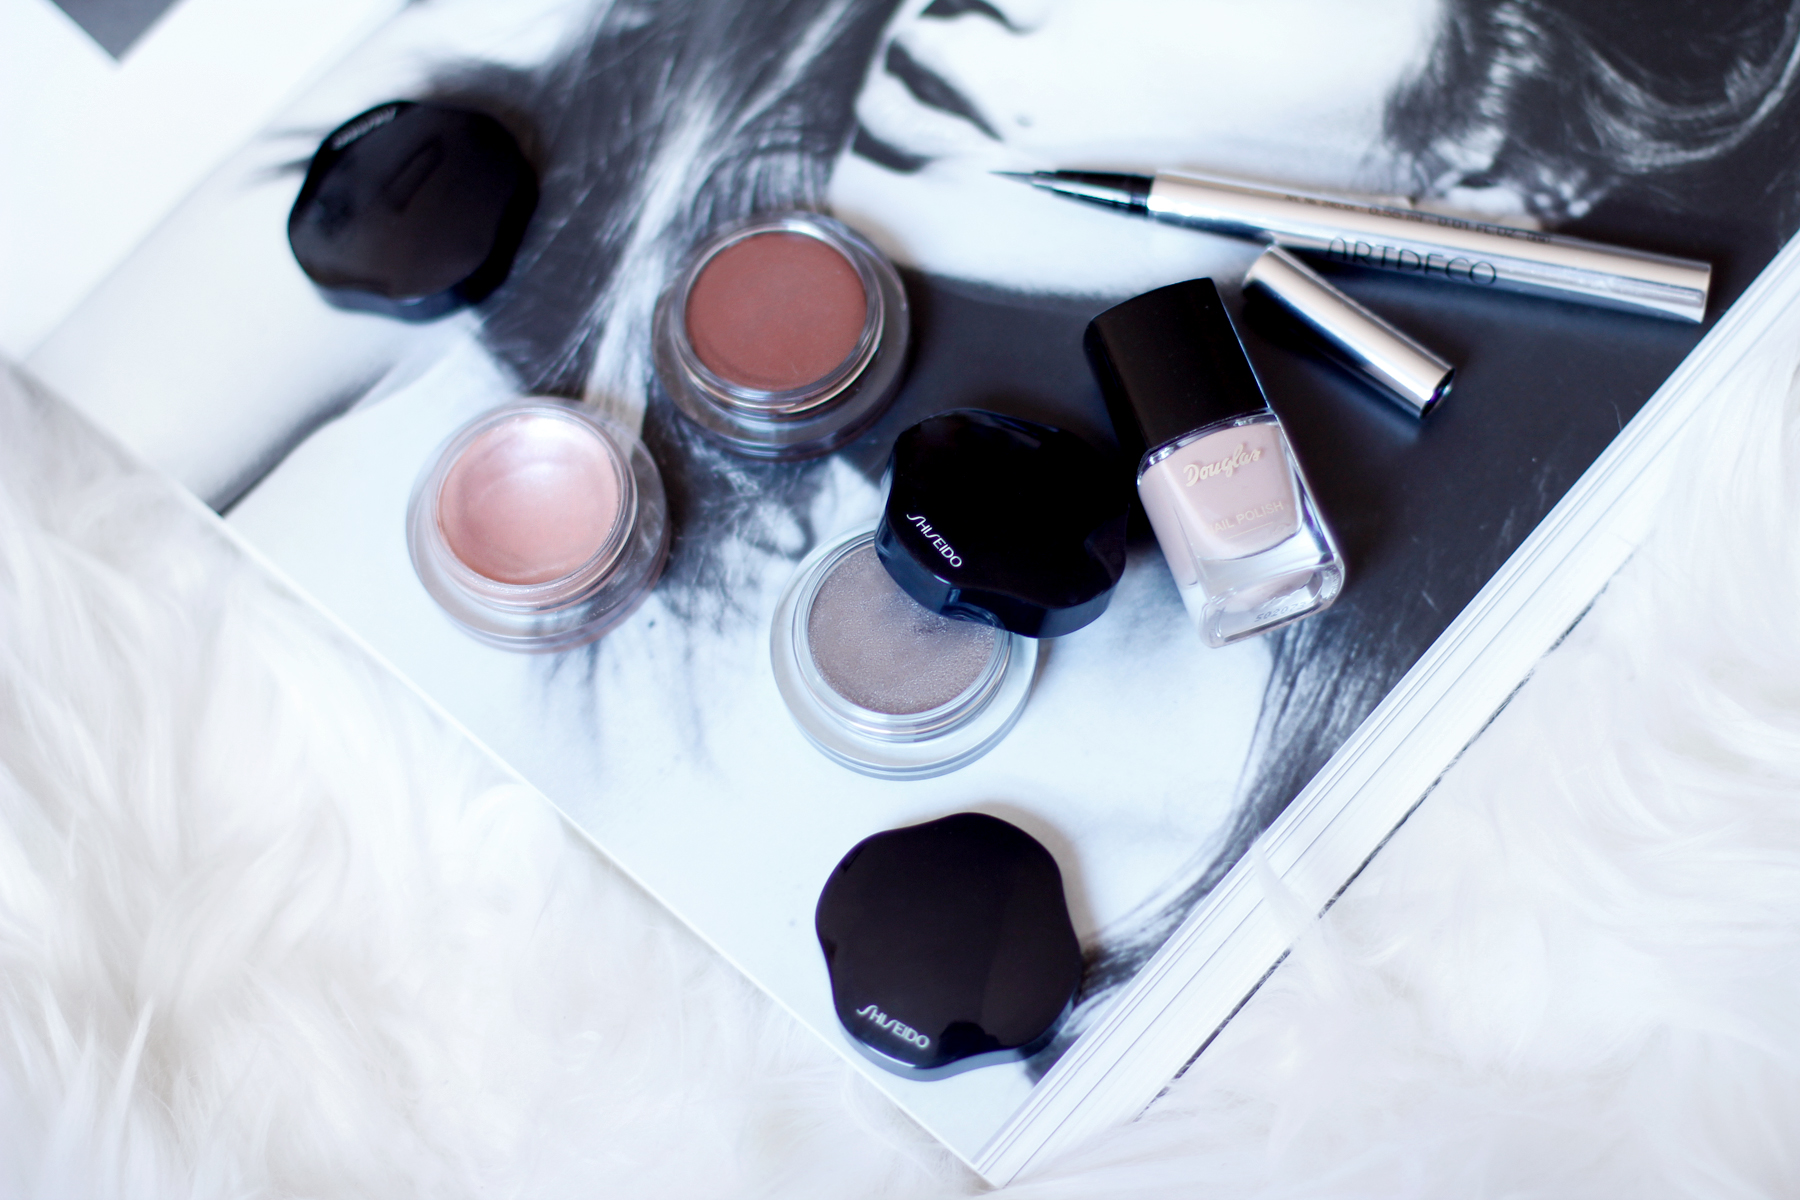 nude look beauty favorites summer 2015 shiseido l'oreal m.a.c. douglas beautyblogger ricarda schernus düsseldorf berlin 4